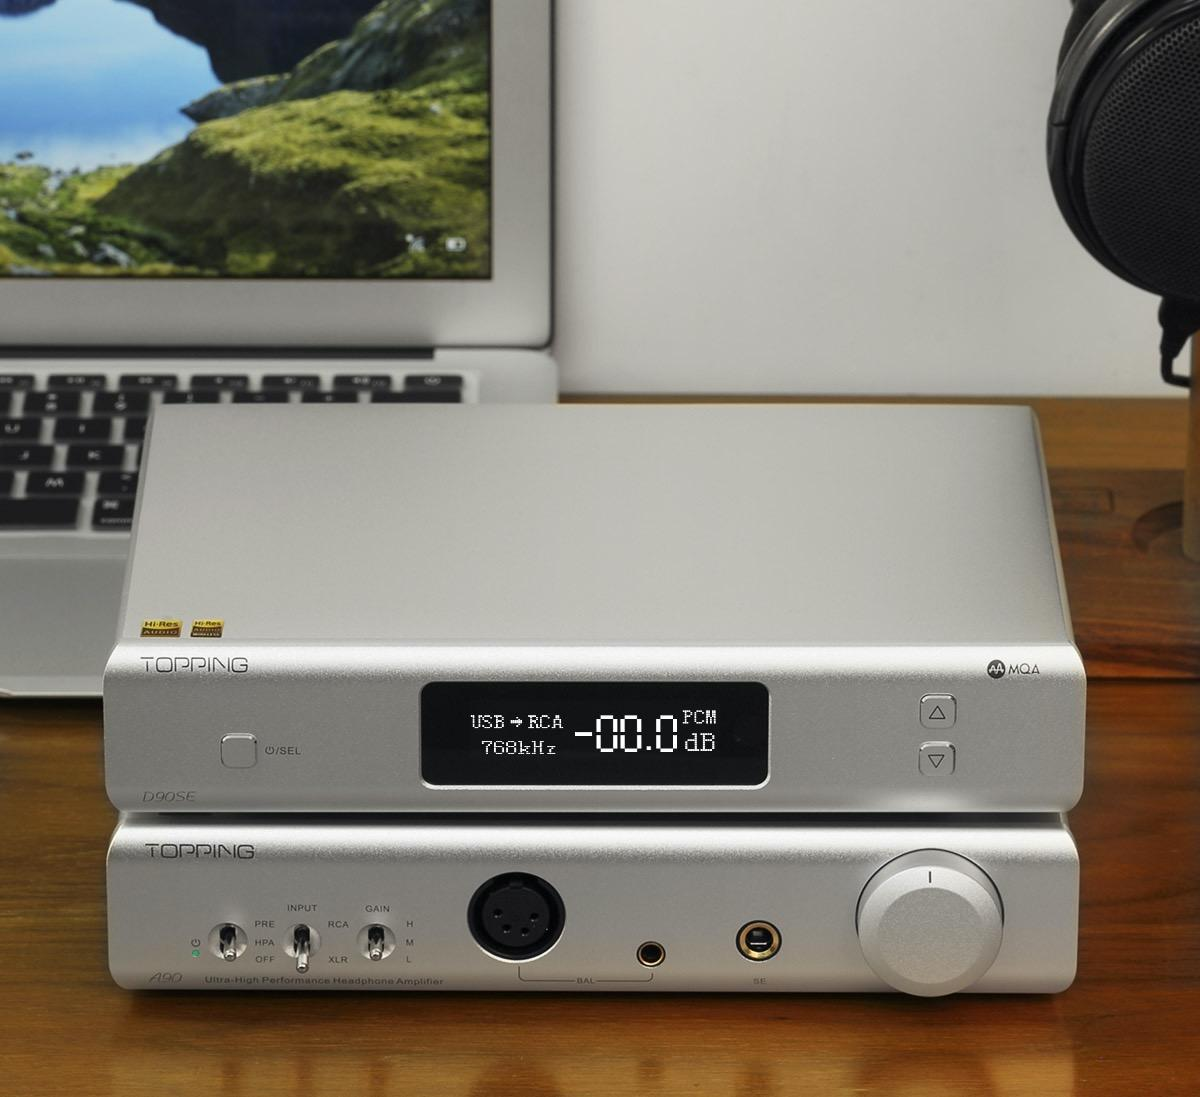 Topping has revamped its flagship DAC model with even better noise and distortion specifications. See how the new D90SE performs.